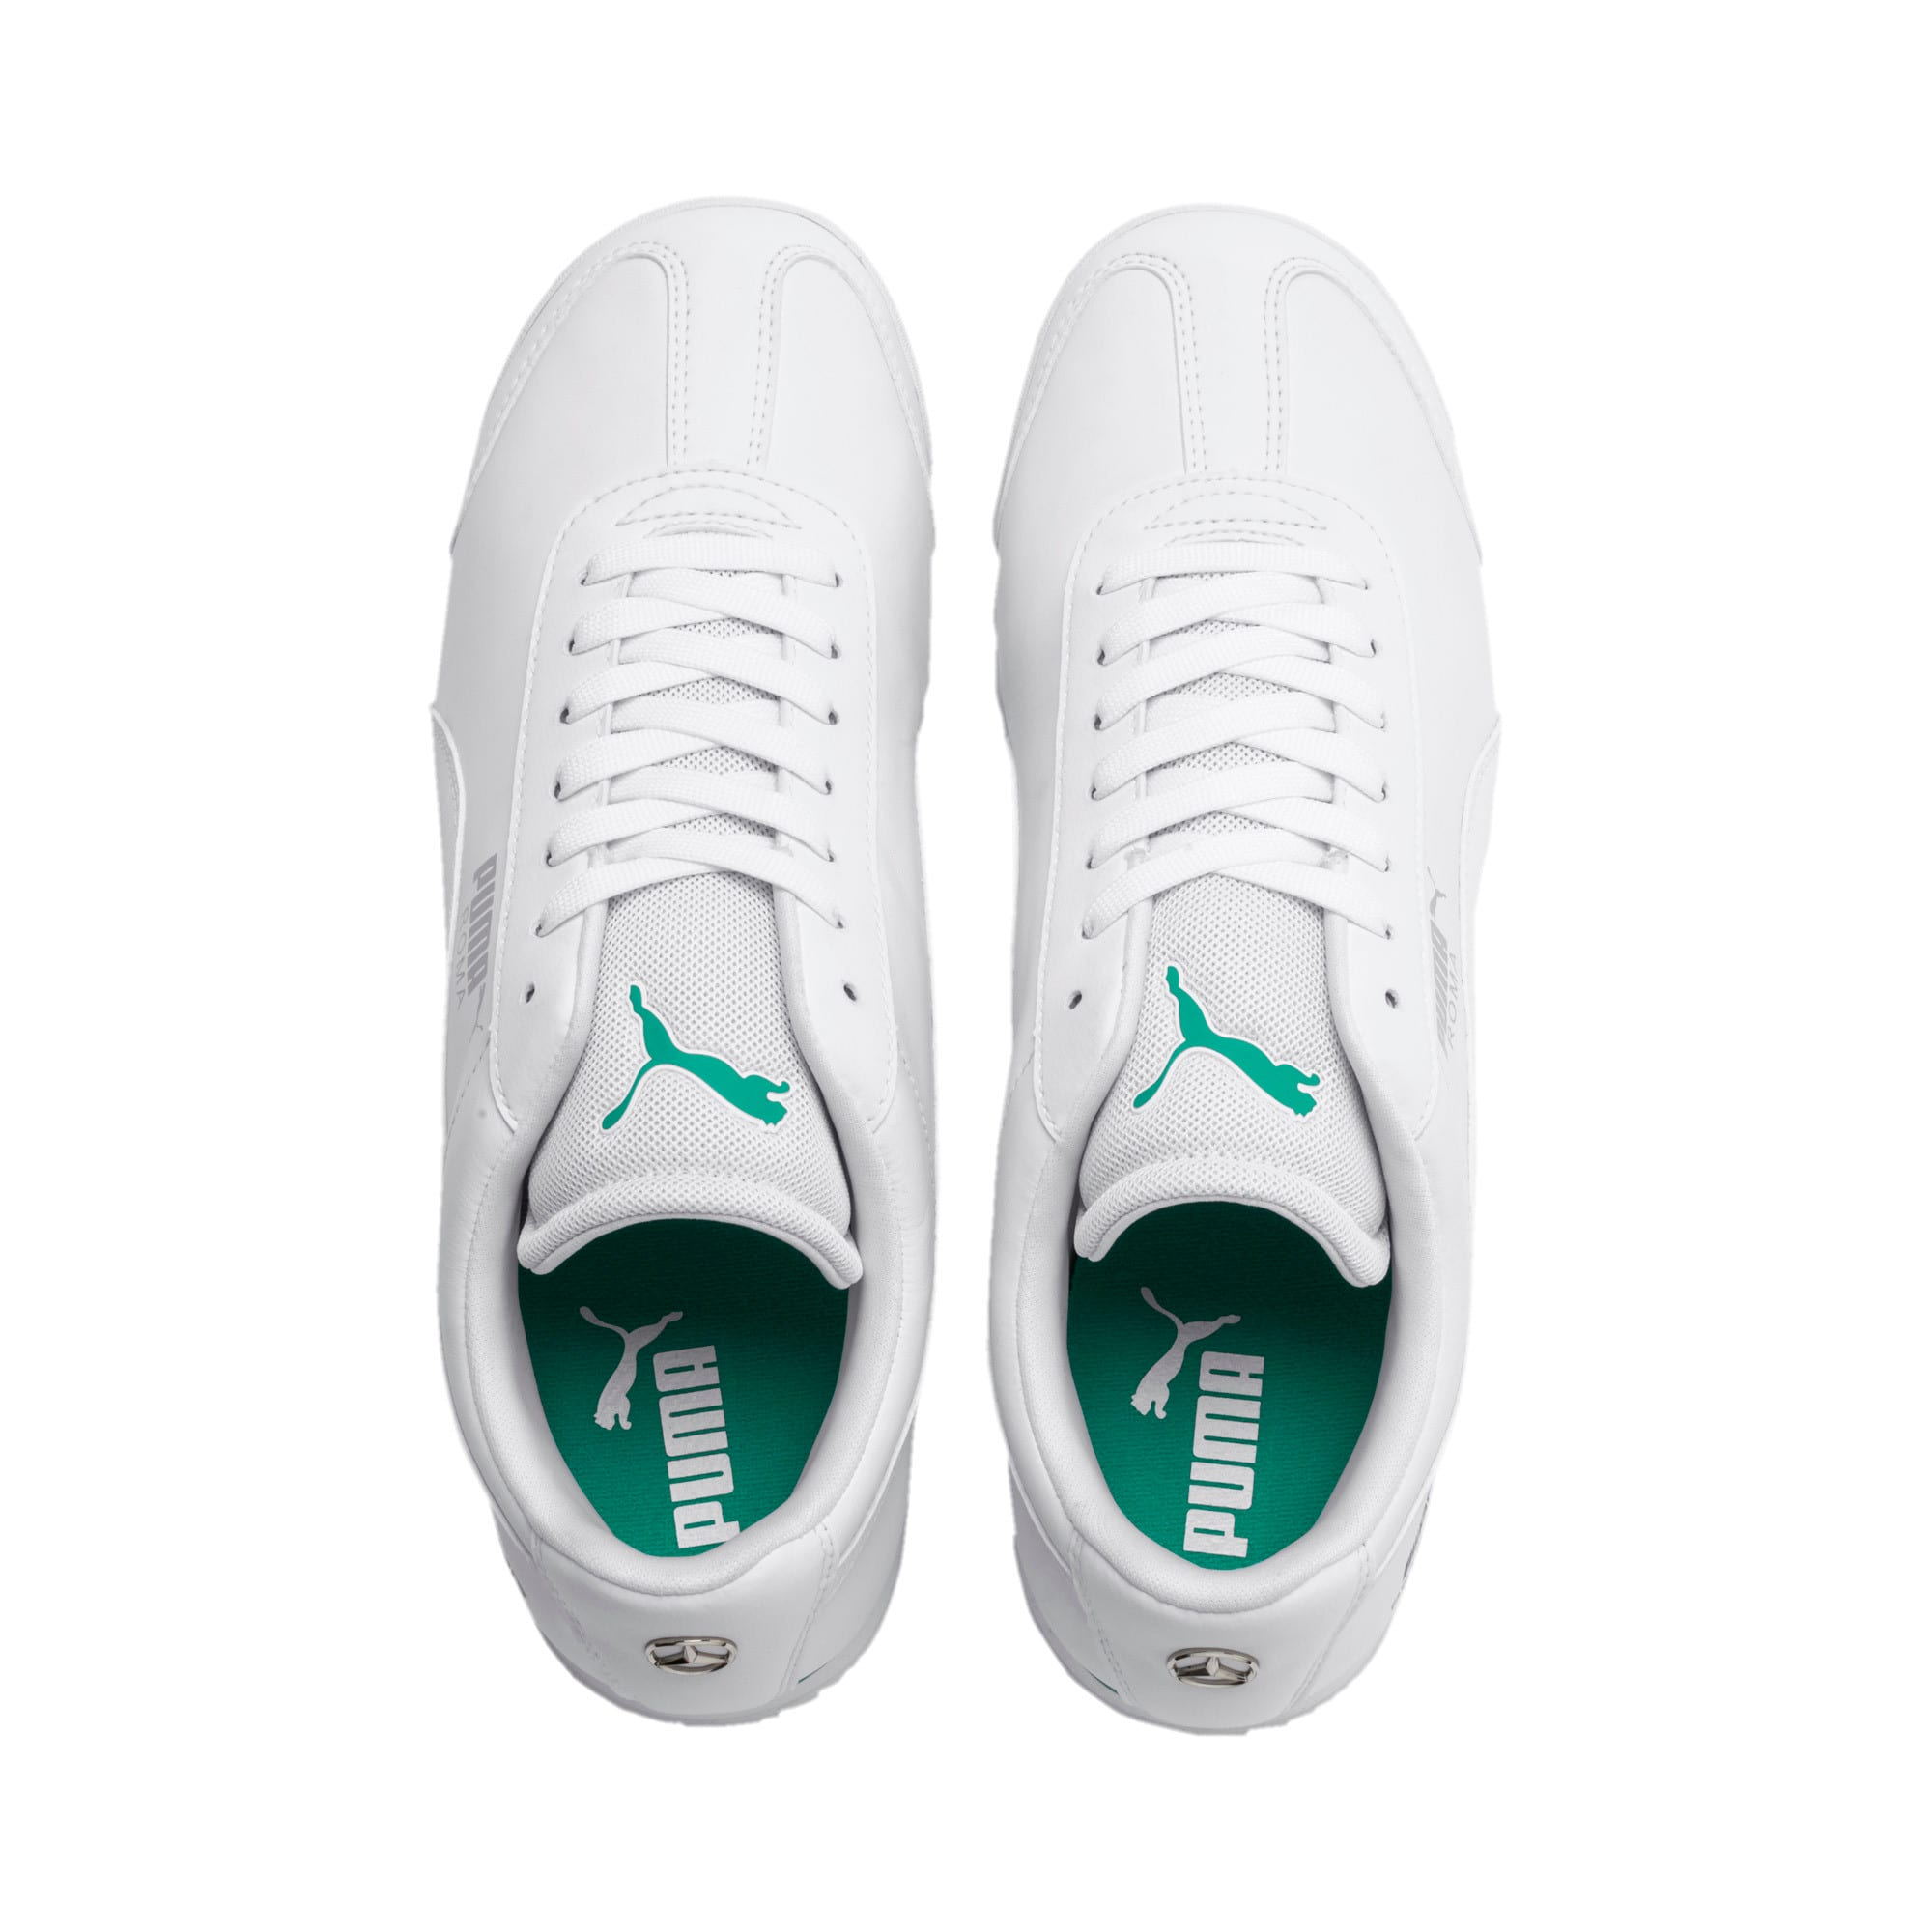 Thumbnail 7 of Mercedes AMG Petronas Roma Men's Sneakers, Puma White-Puma White, medium